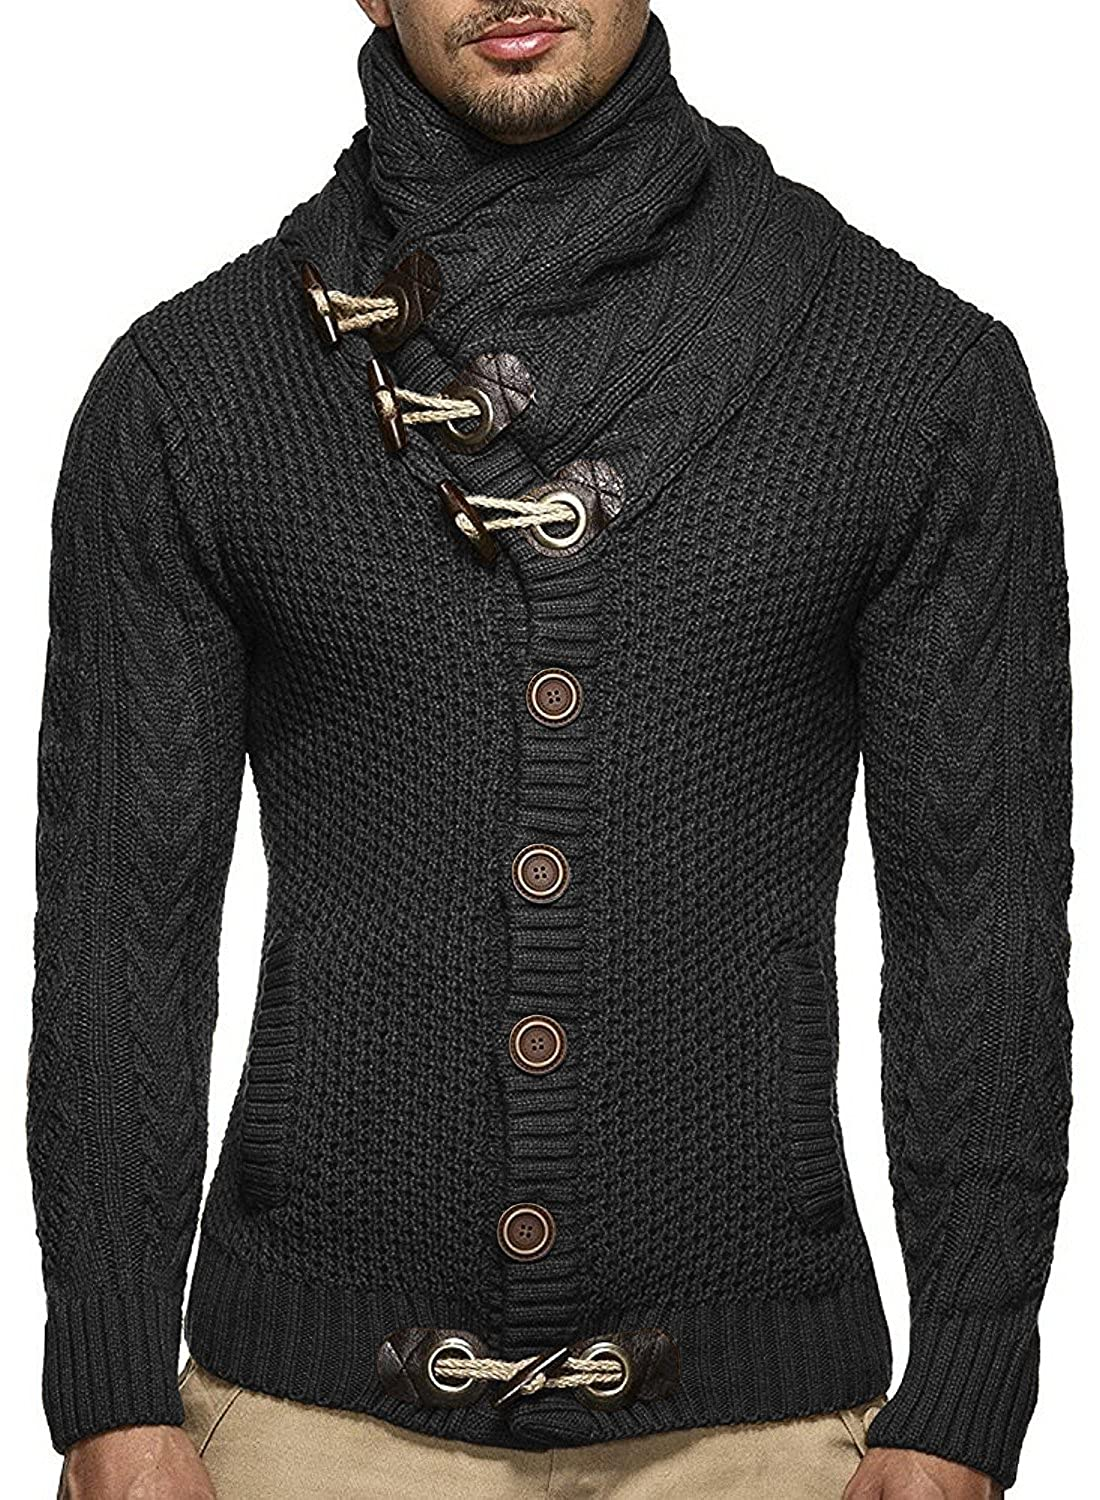 bb1b61fd281 Daomumen Sweaters for Men Cardigan Cable Knit Long Oversized Chunky Open  Front Big and Tall with Pockets